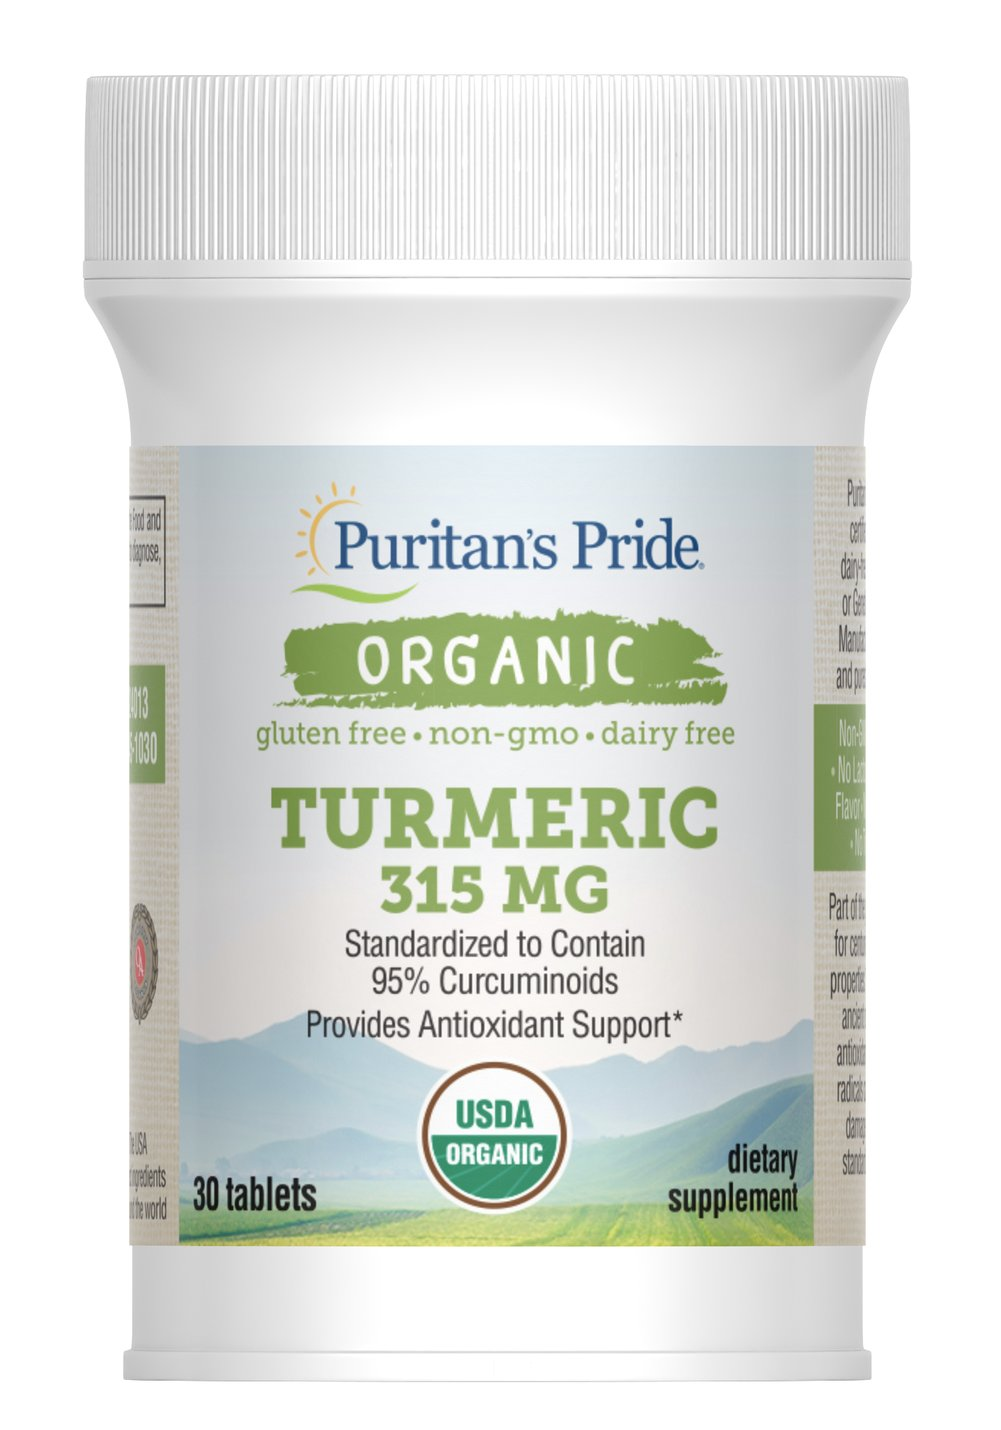 Organic Turmeric Extract 315 mg Thumbnail Alternate Bottle View